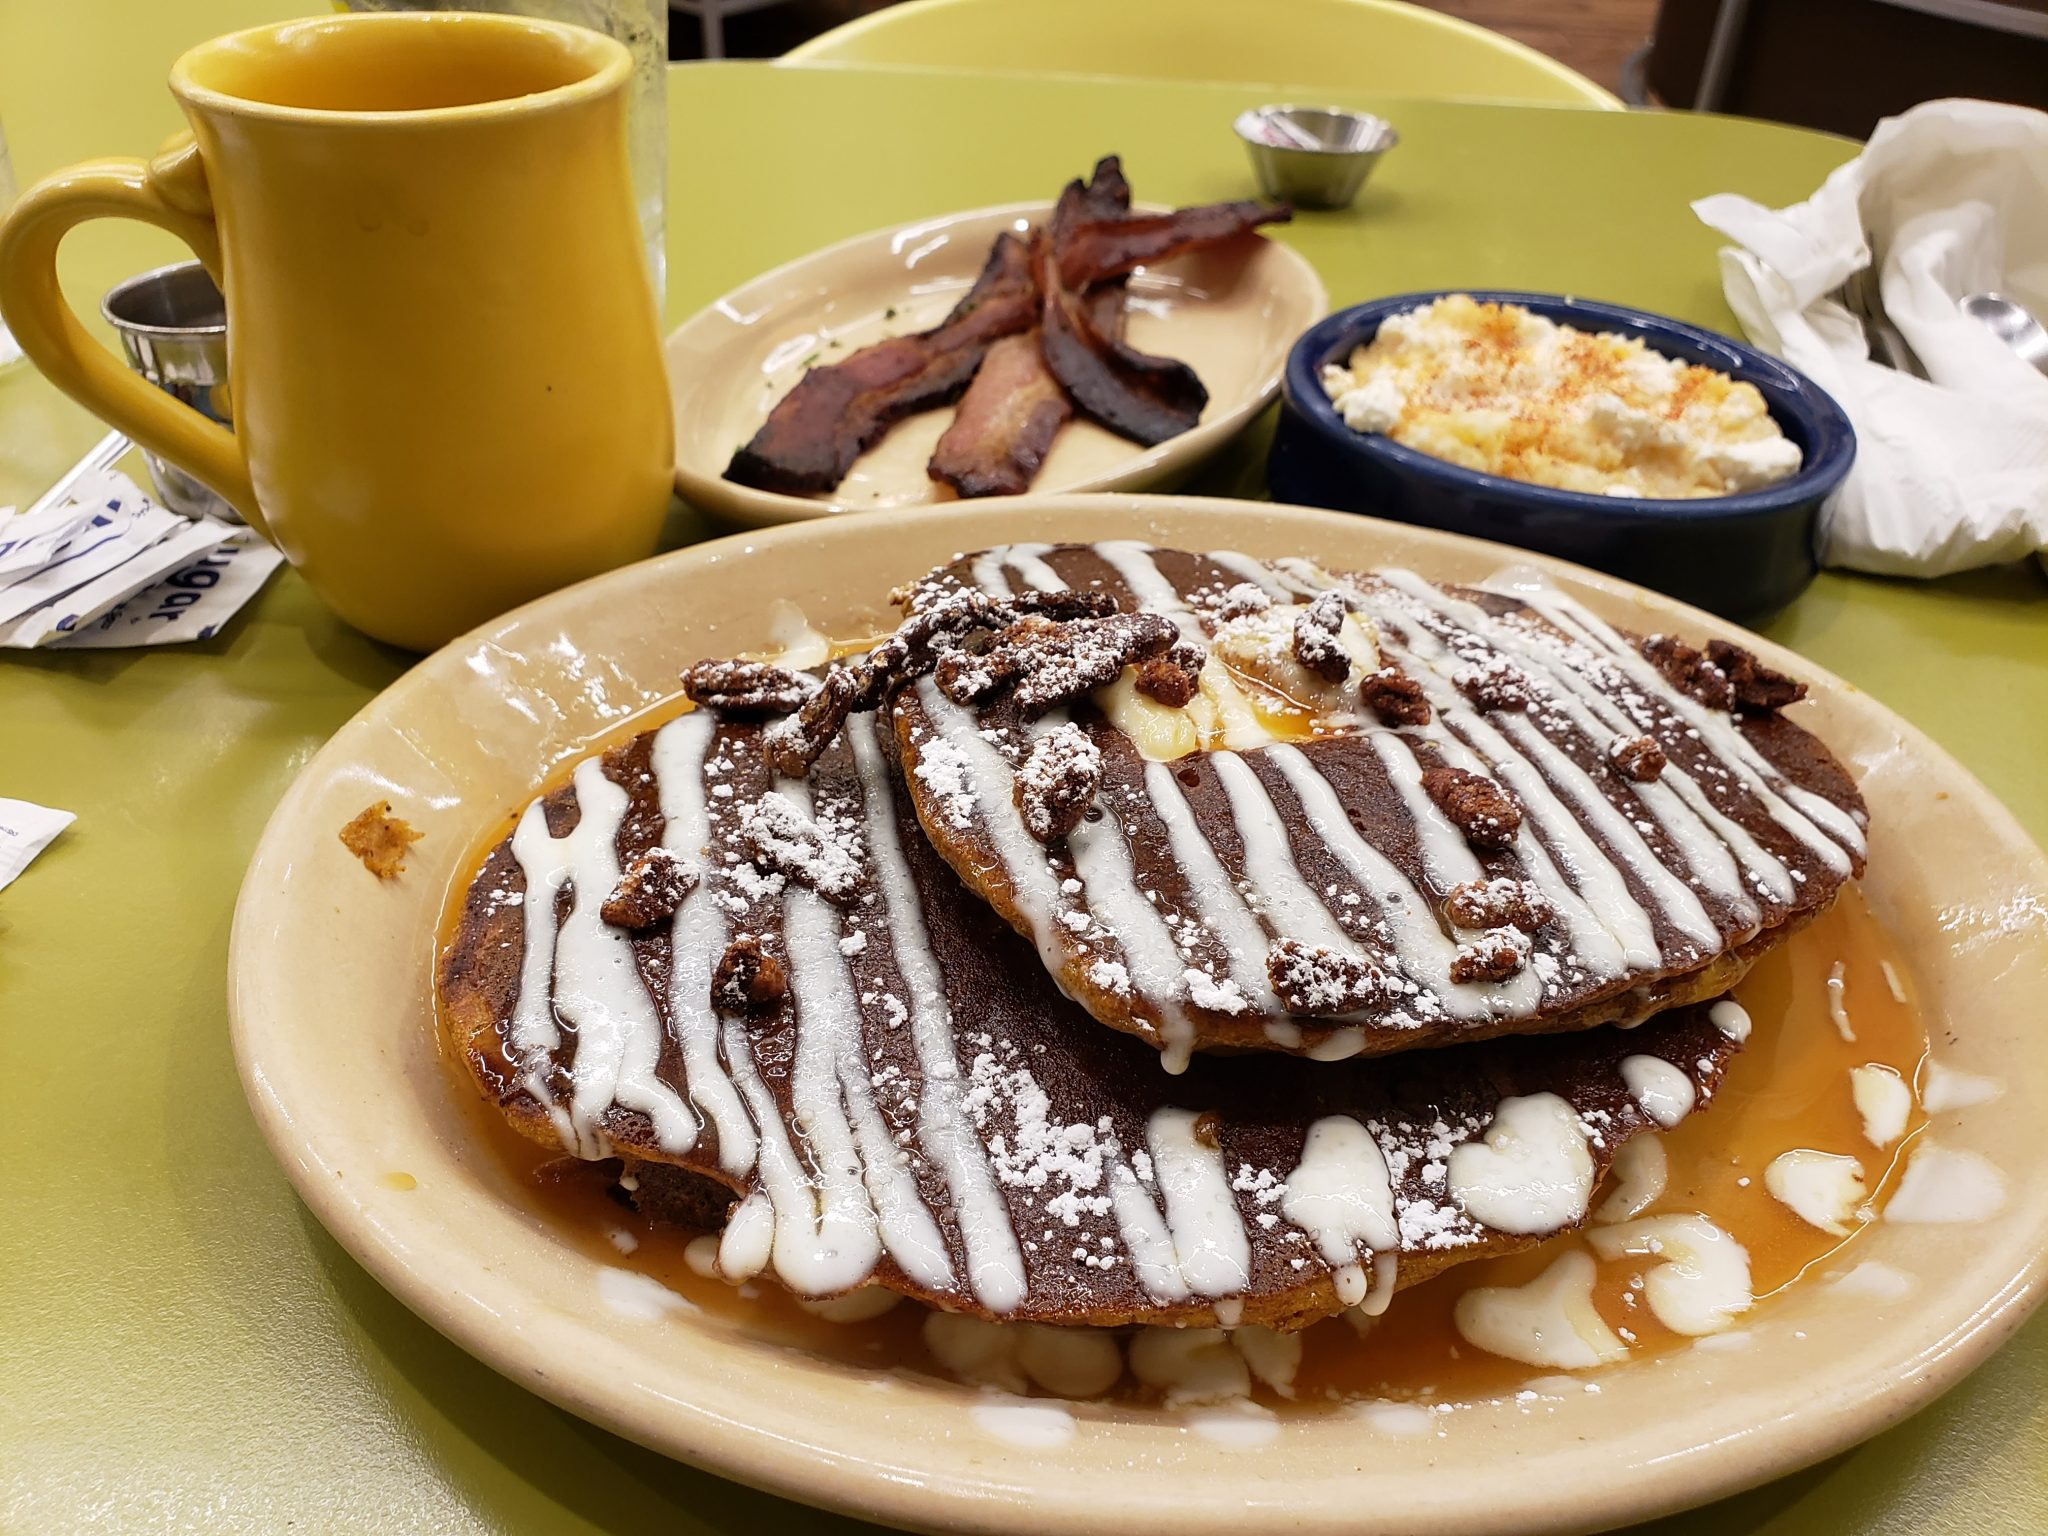 The Best Brunch Spots for Good Eating In Dallas, Texas